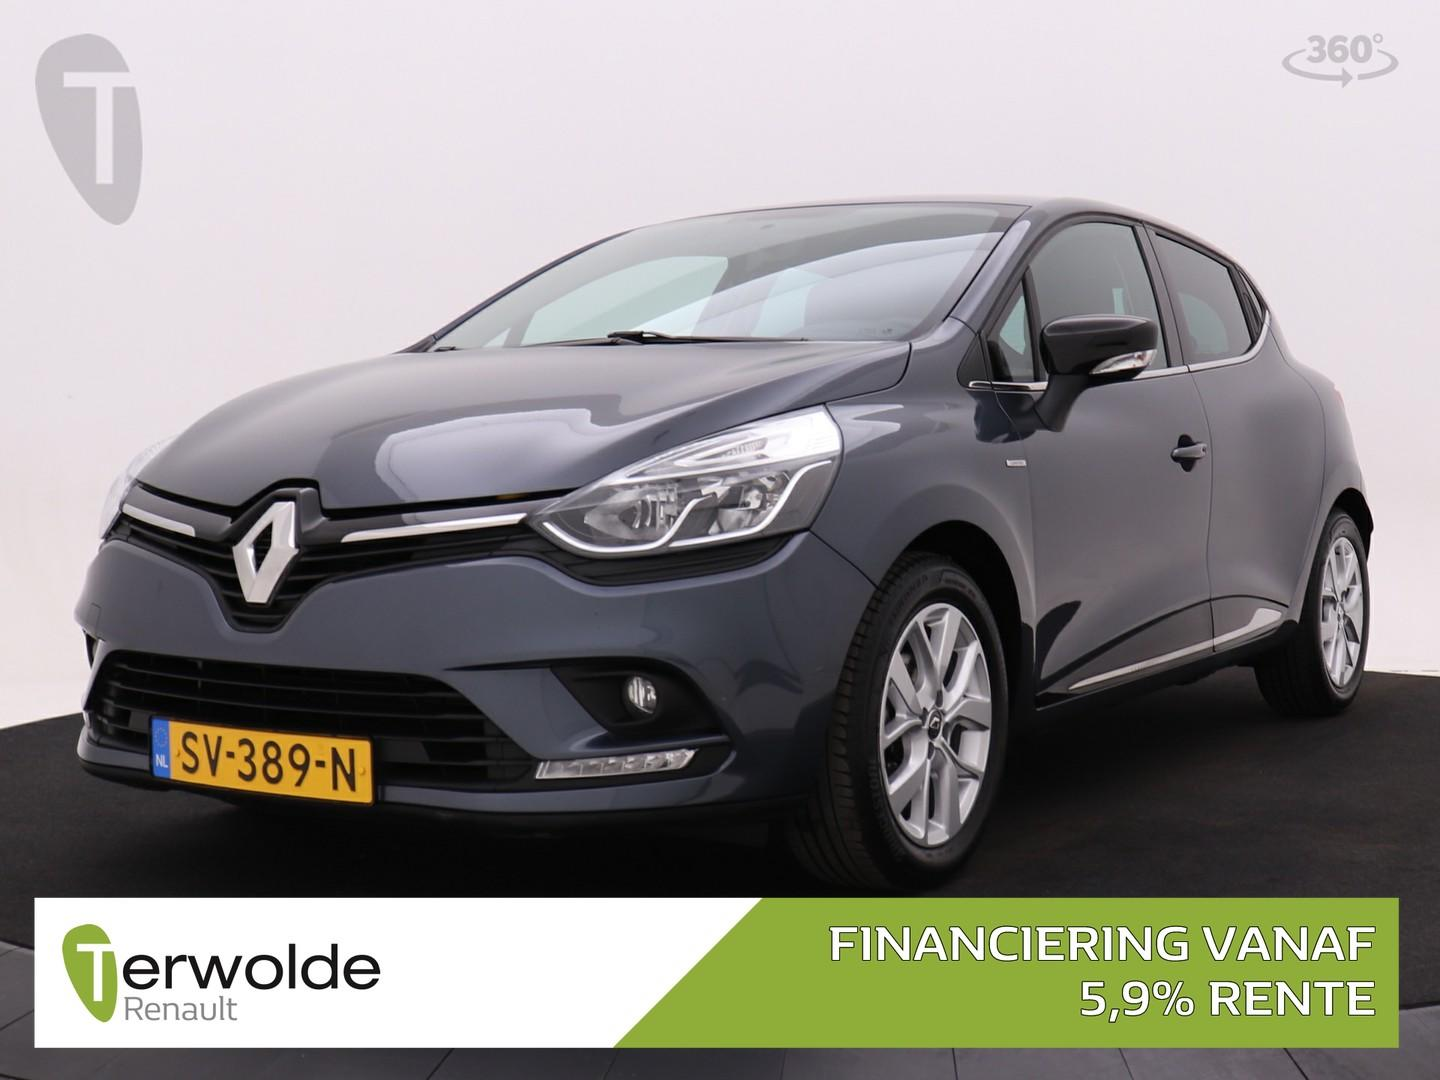 Renault Clio 90pk tce limited airco i cruise control i navigatiesysteem